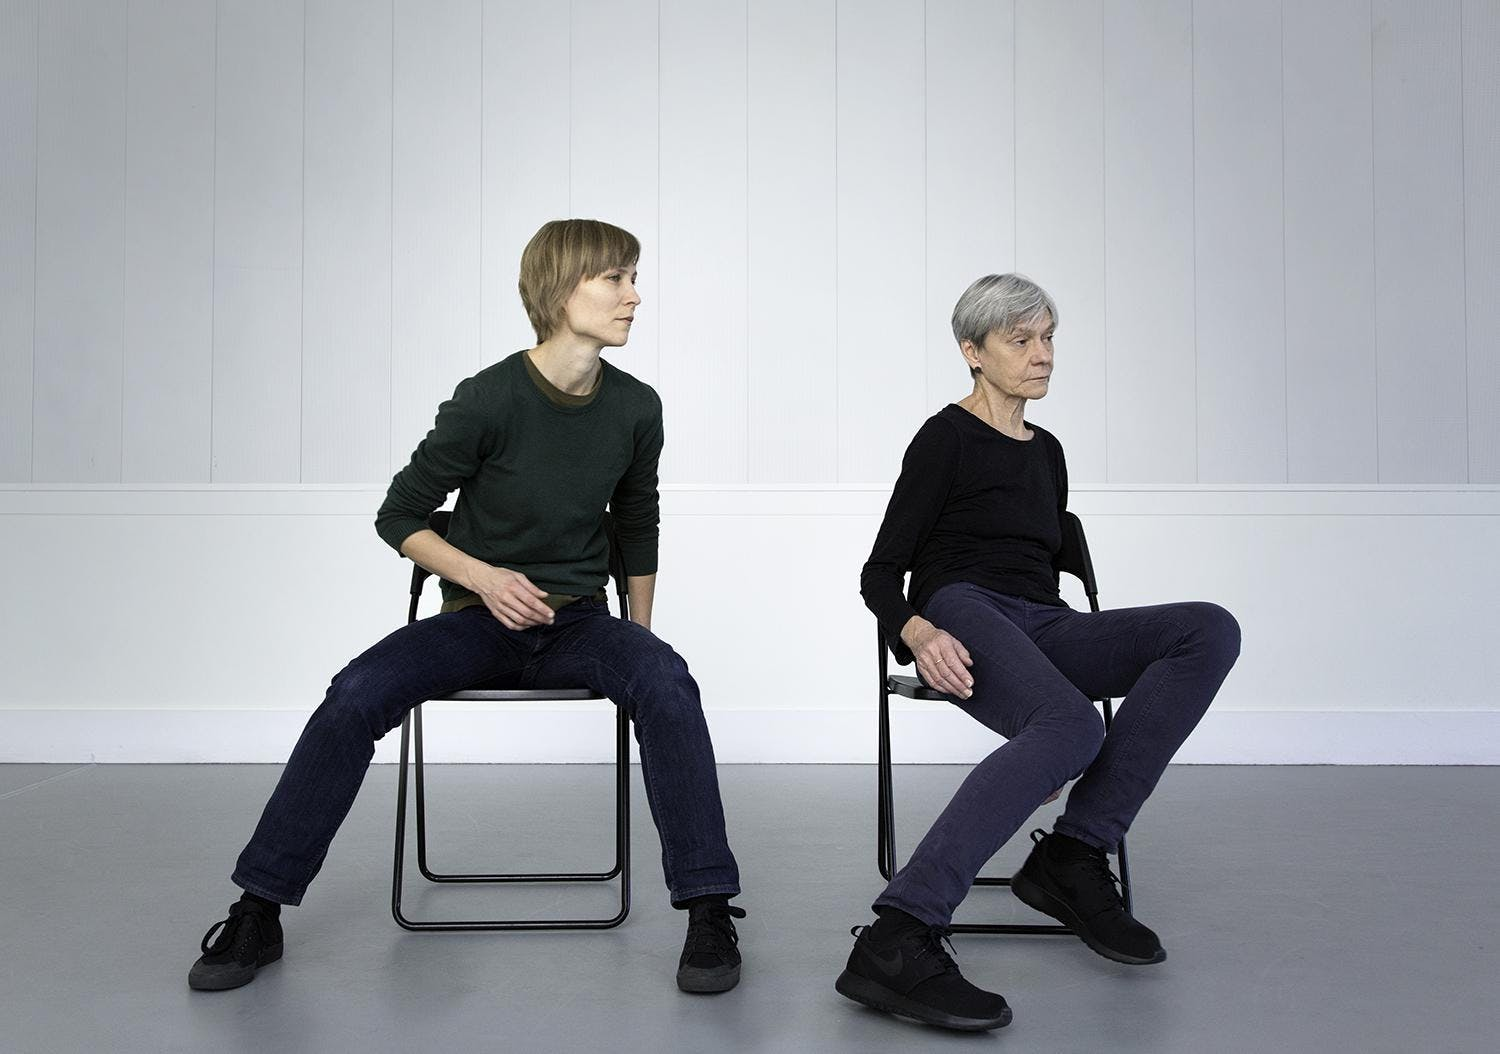 Transparencies: A process in company, by Siobhan Davies